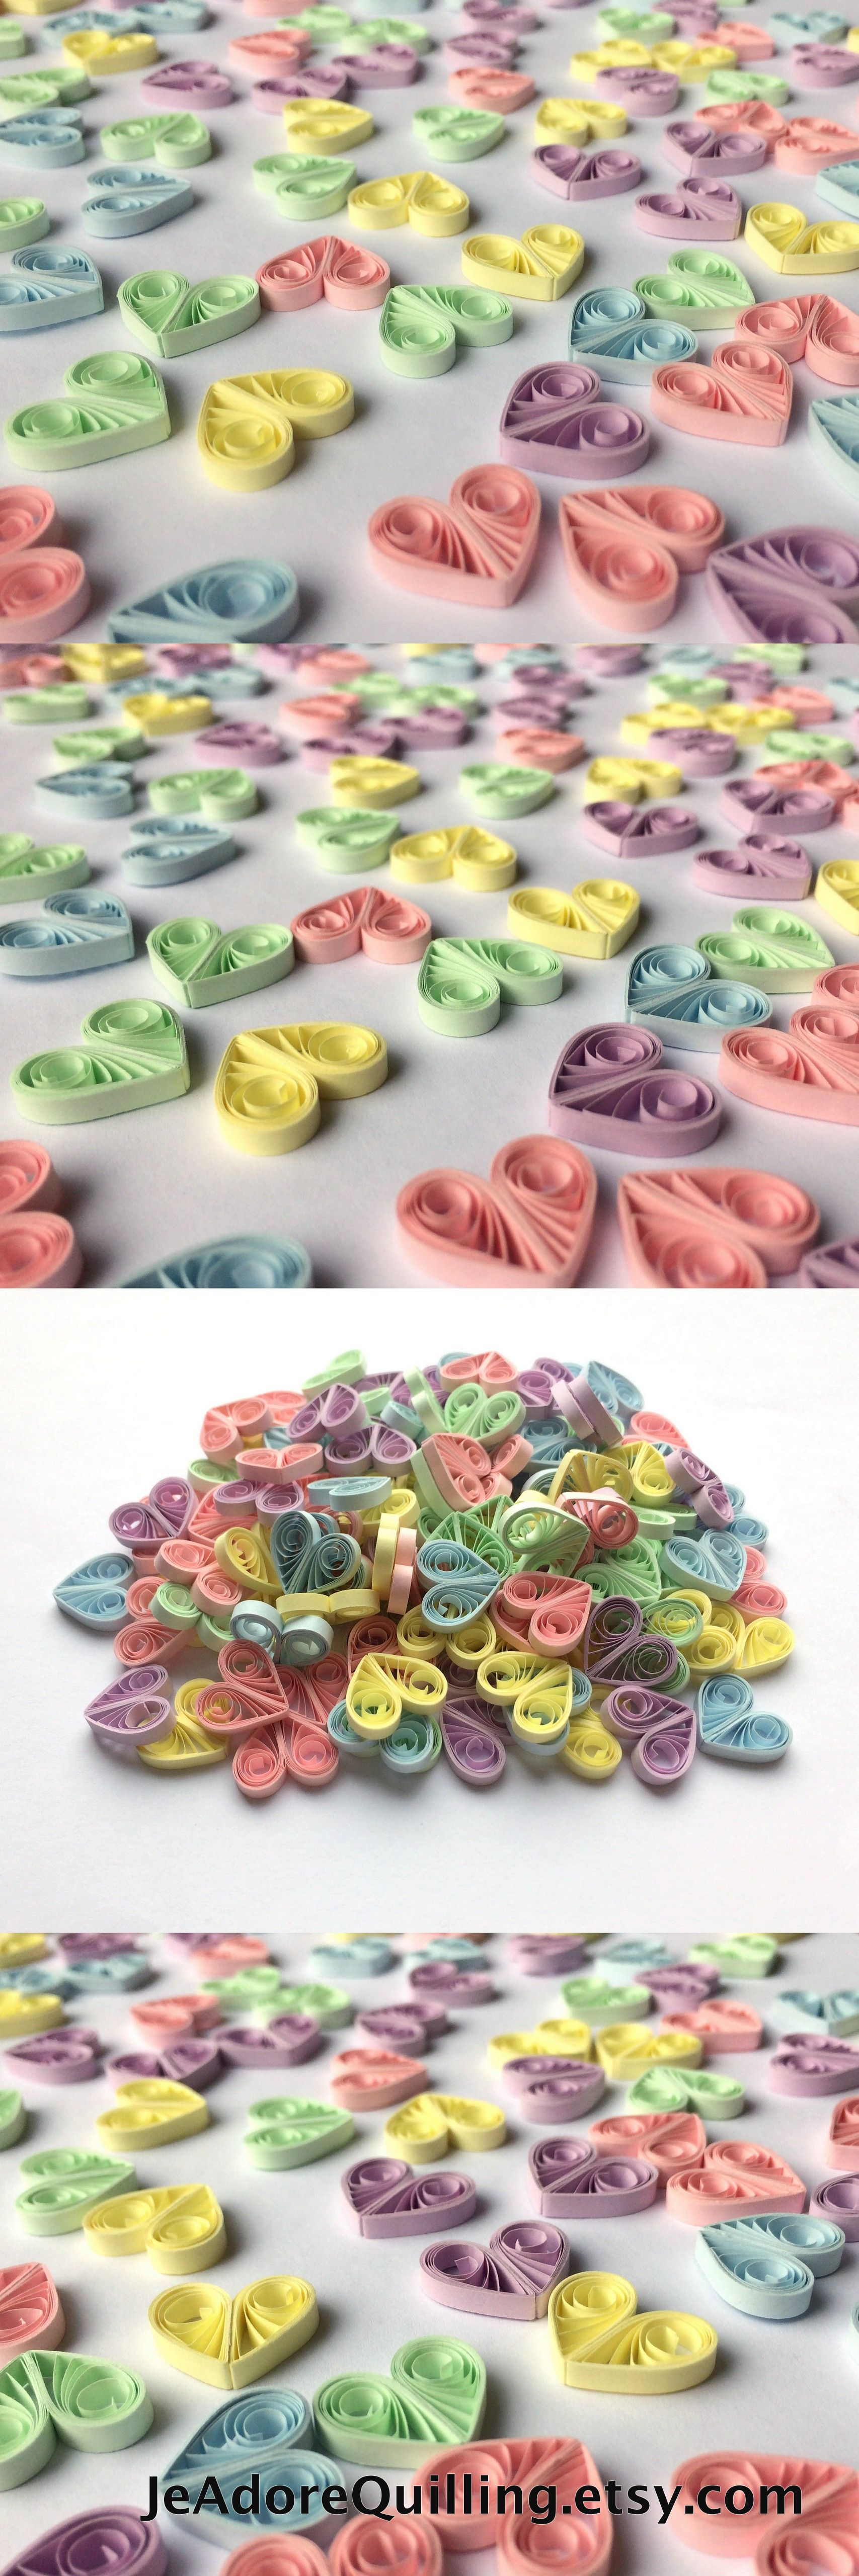 Quilling wedding decorations  Quilled Hearts Paper Quilling Art Confetti Scatter Ornaments Gifts